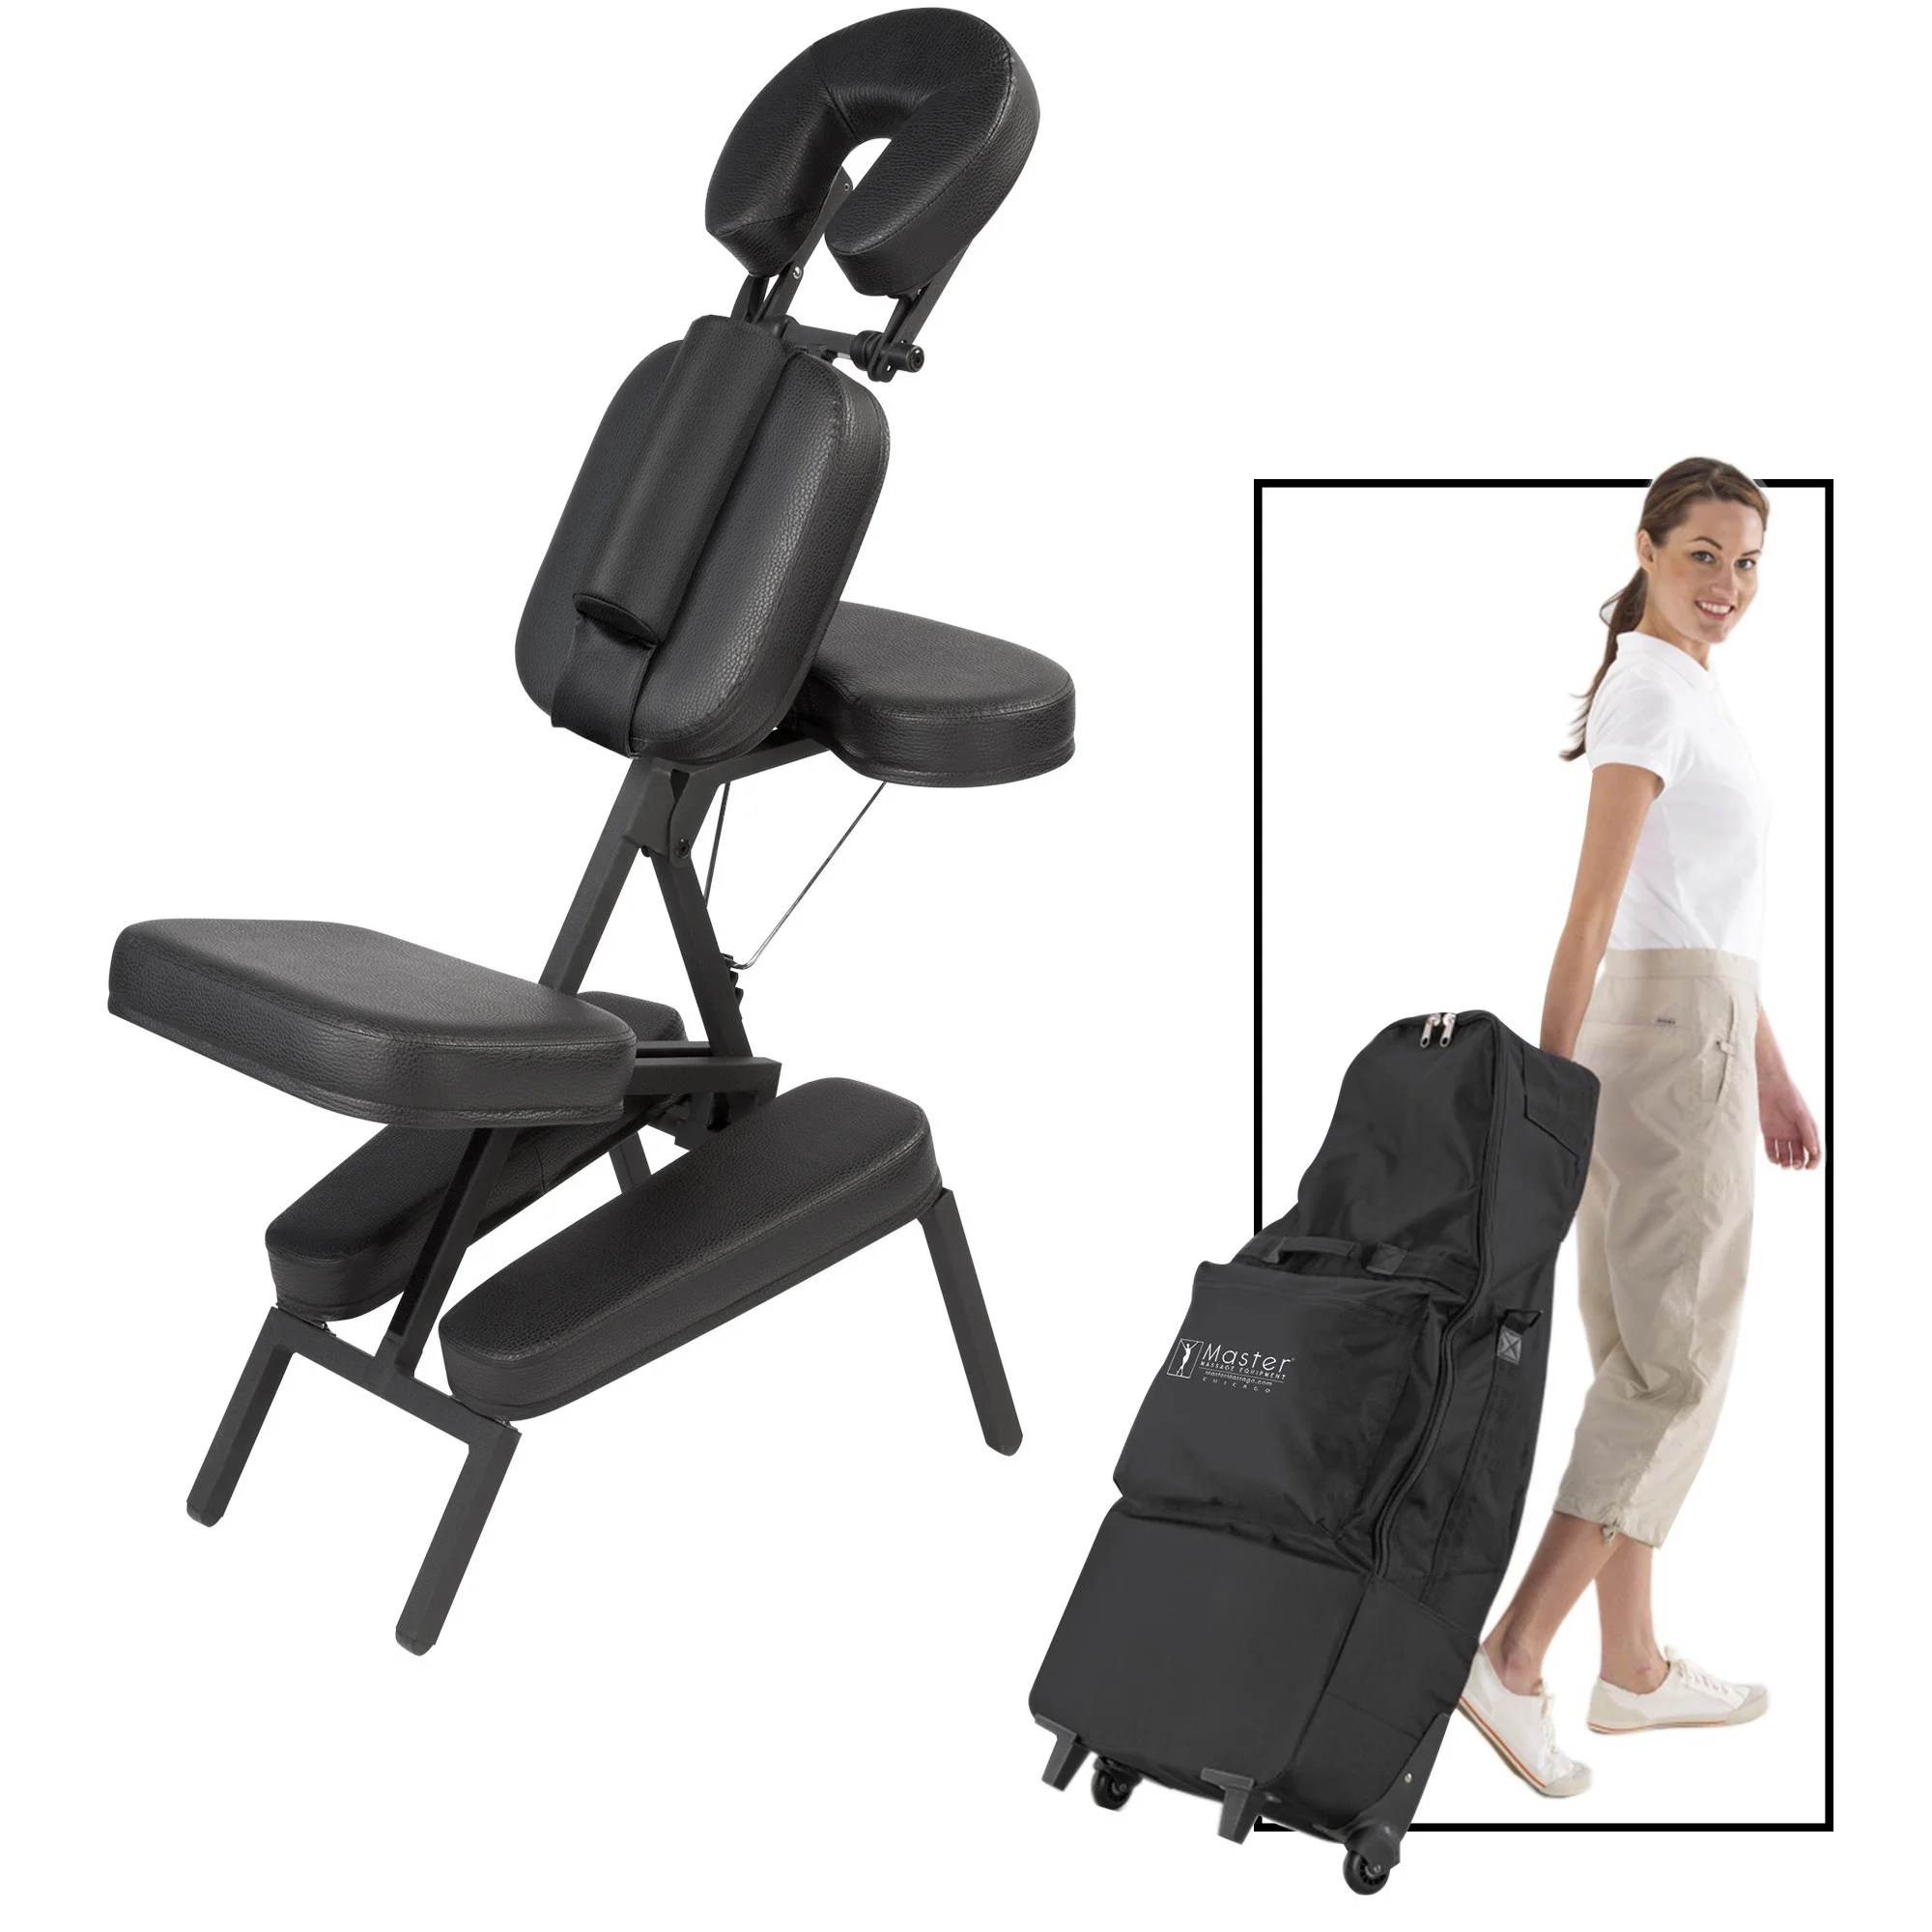 massage chair portable hanging swing indoor apollo ebay